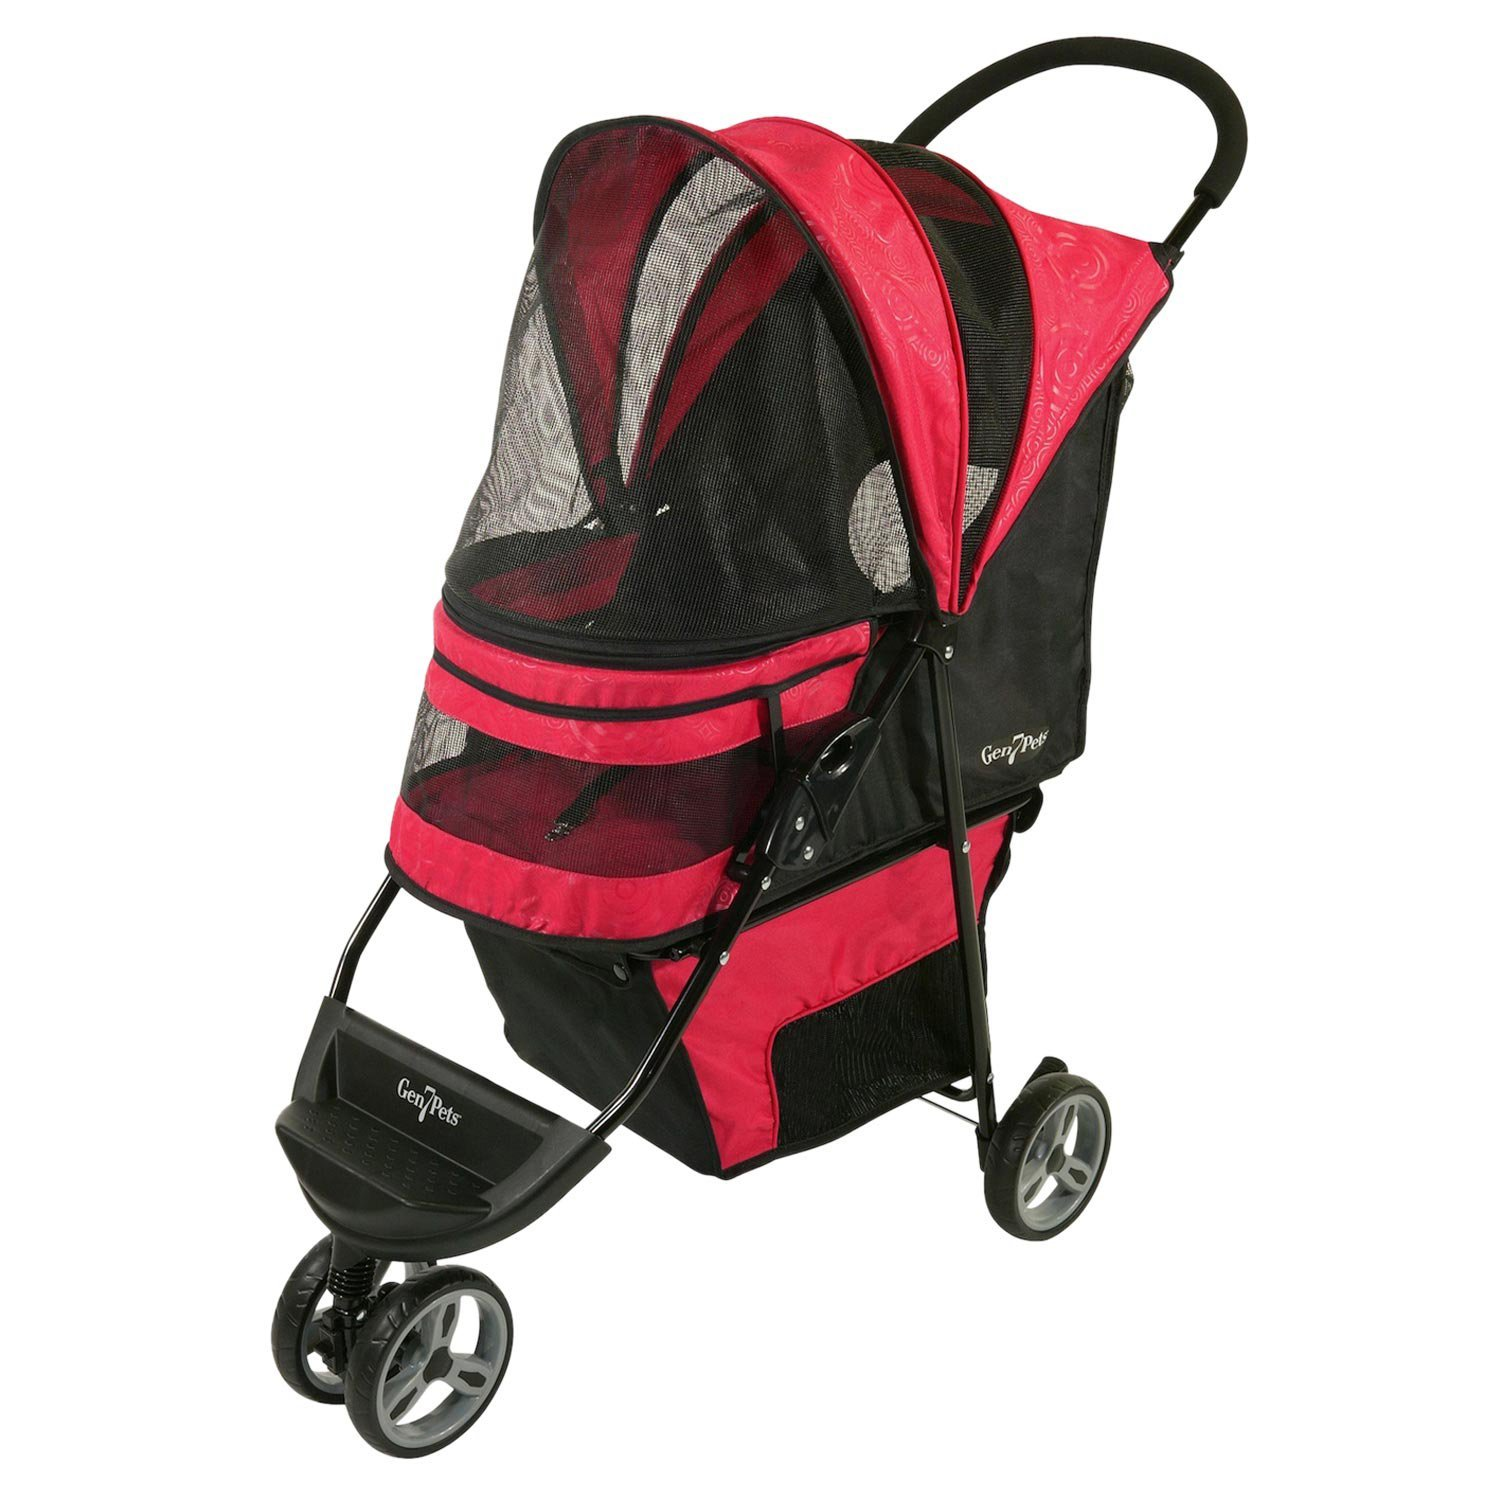 Gen7Pets Regal Plus Pet Stroller